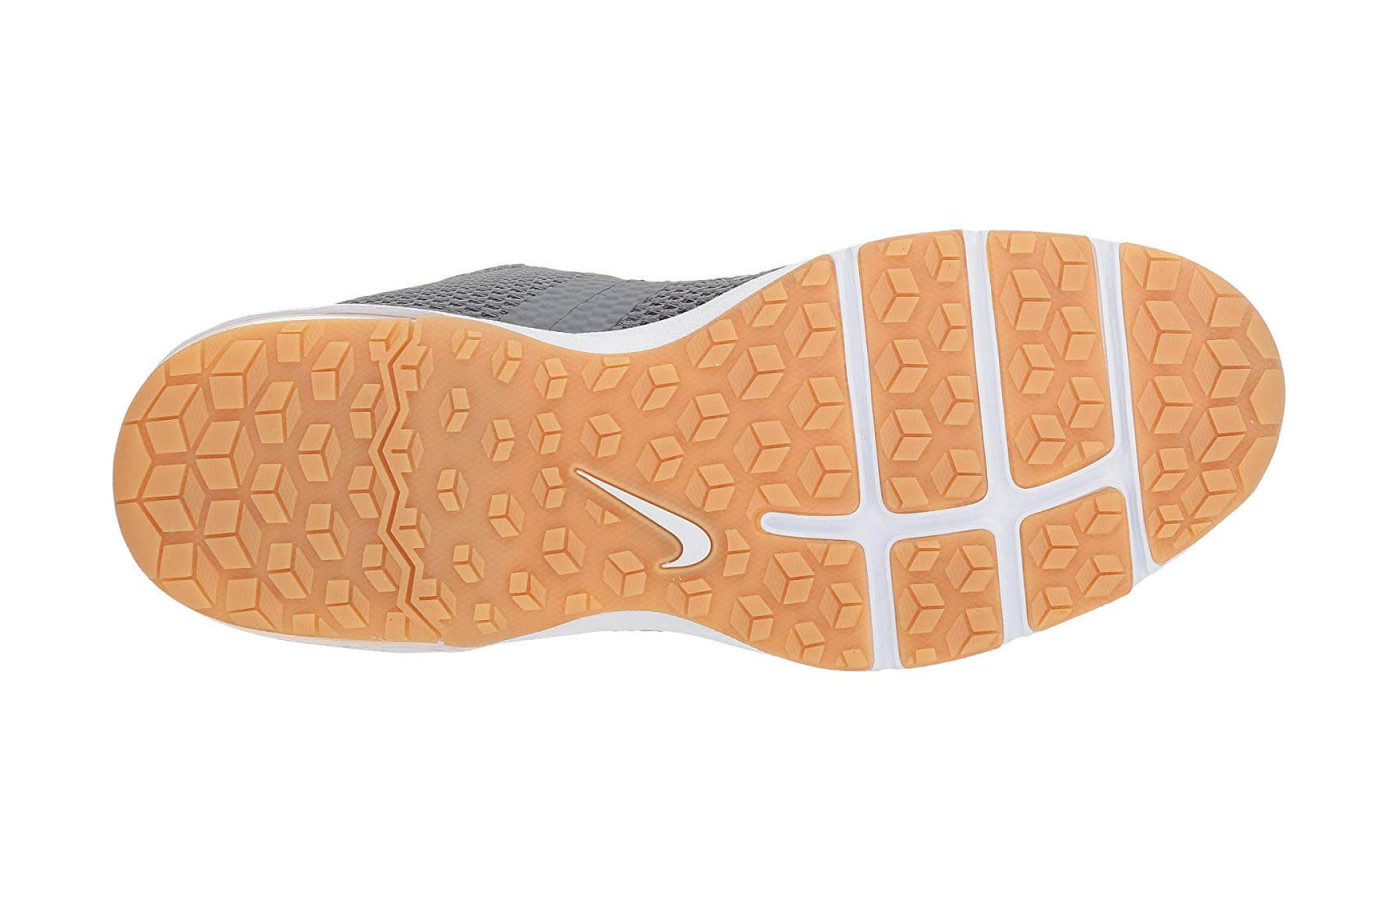 A standard rubber compound is used for the Air Max Typha 2's outsole